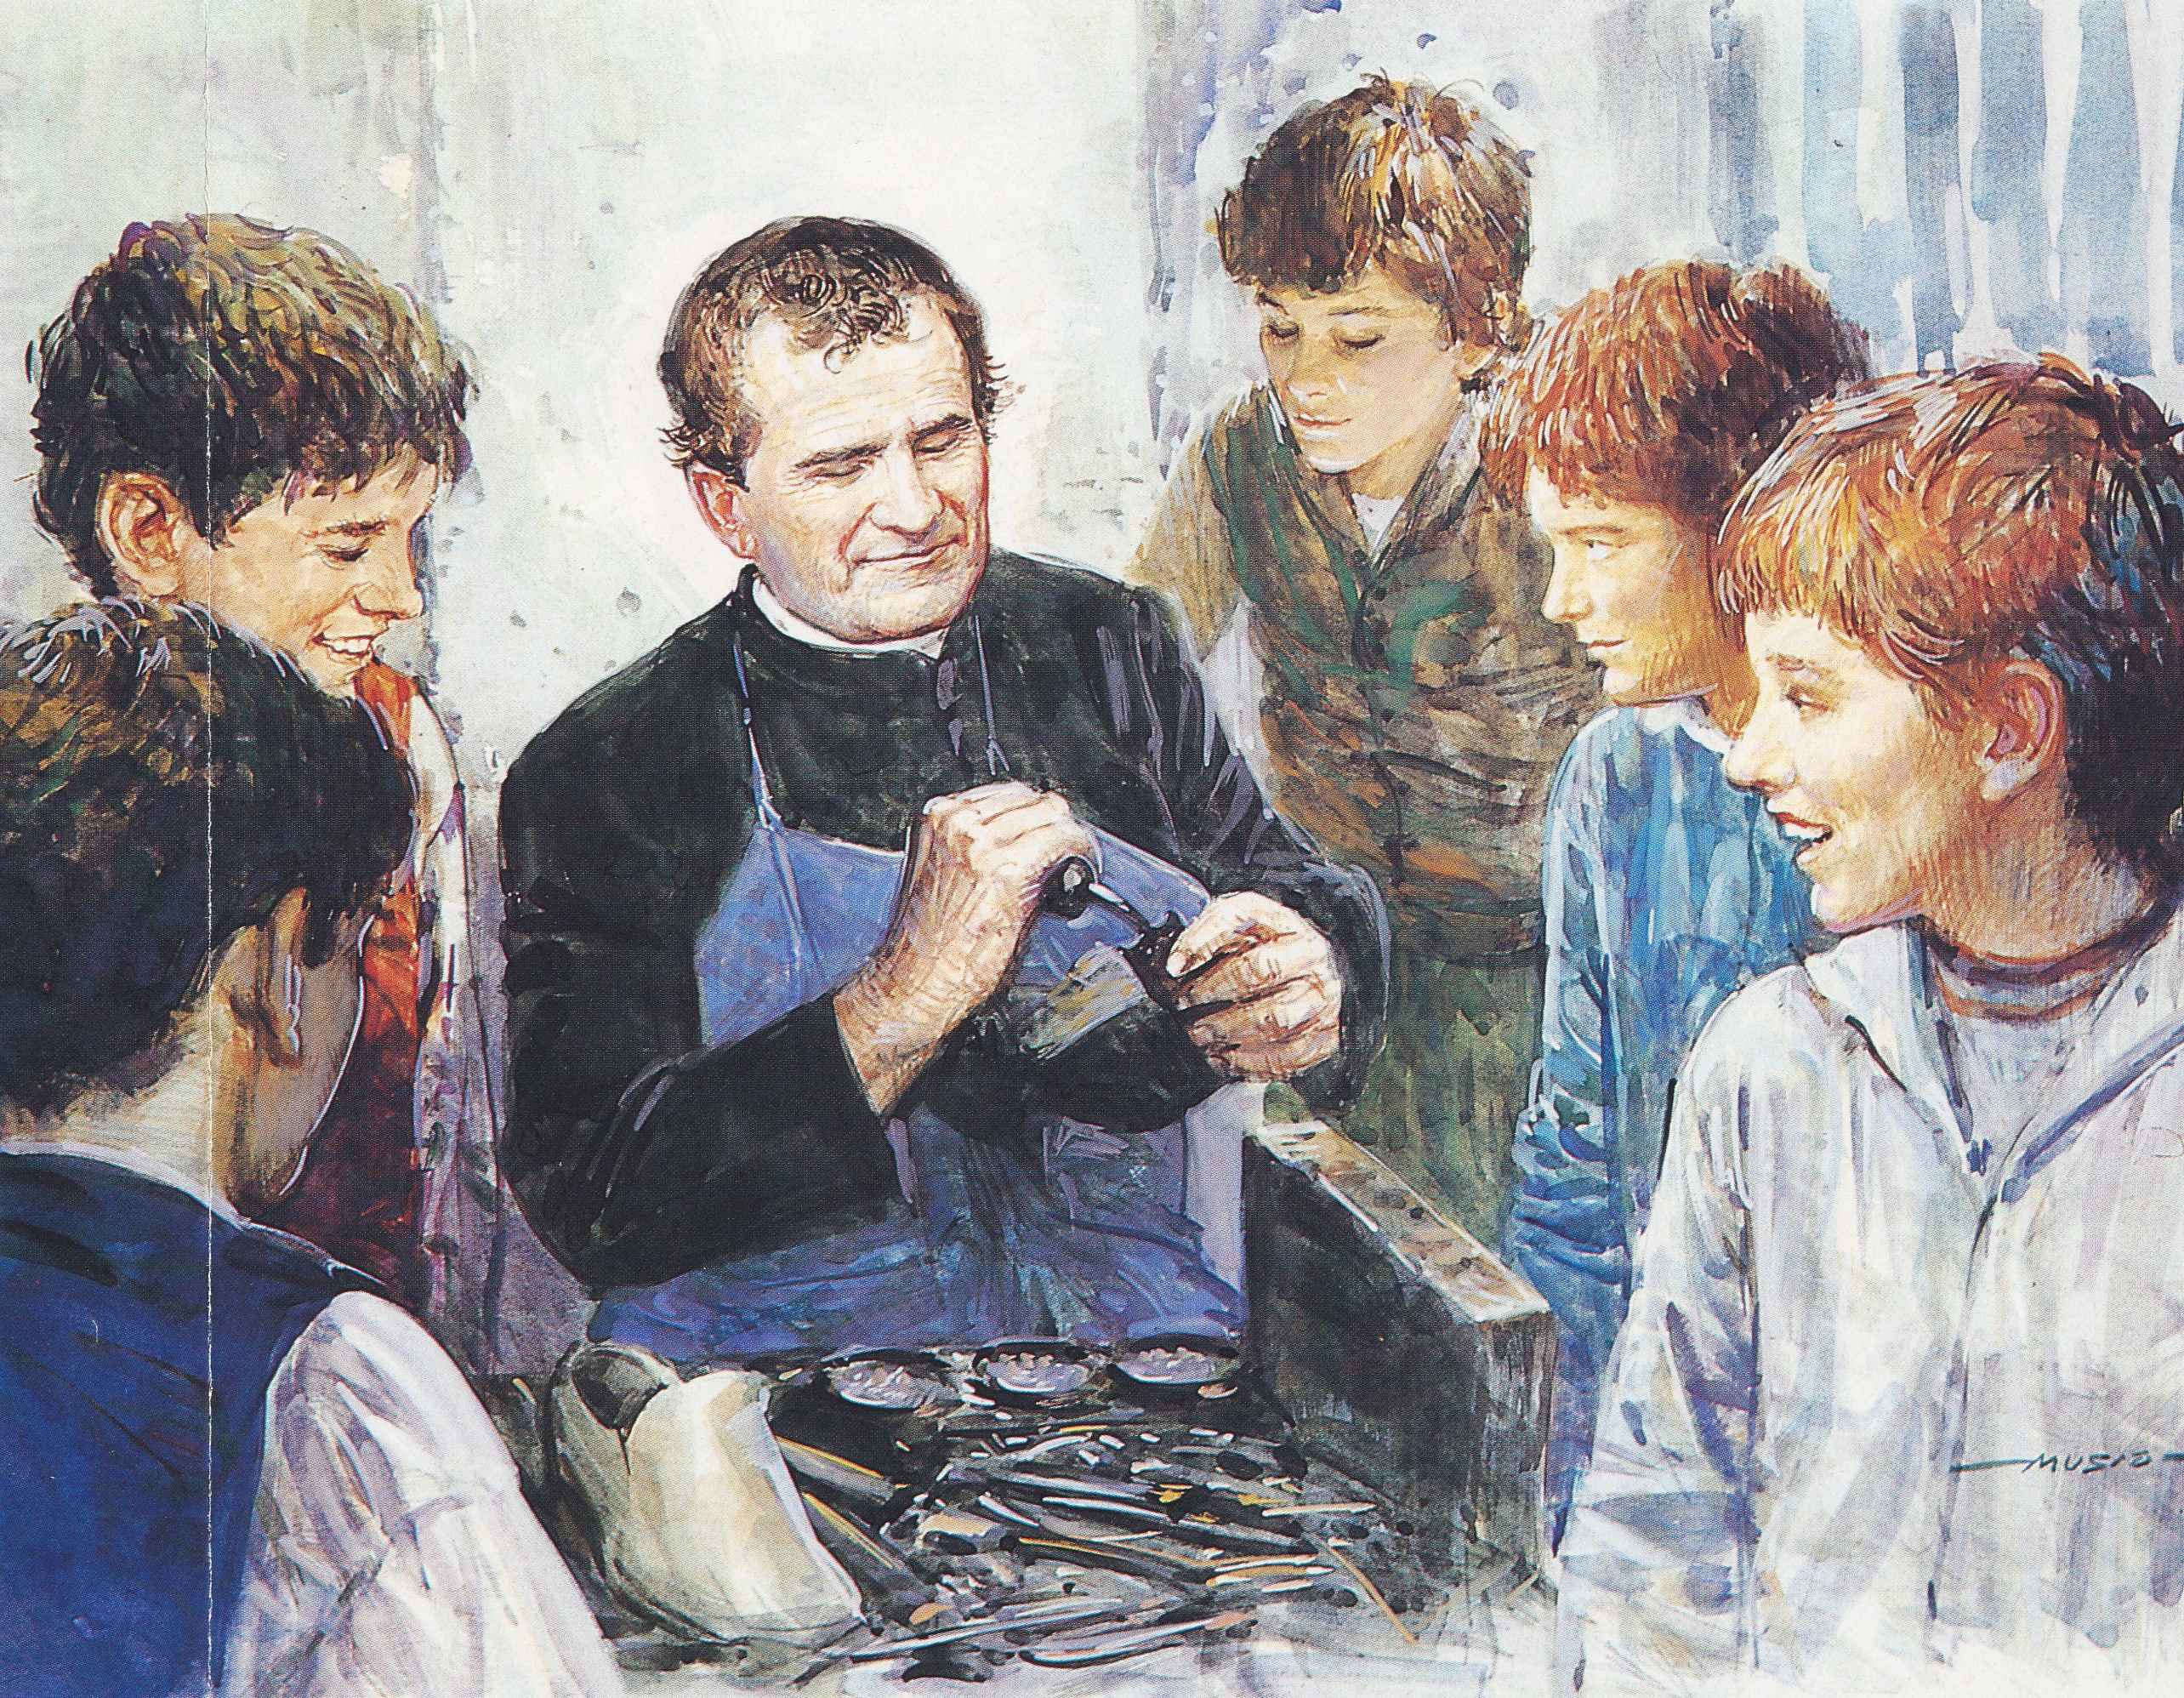 don-bosco-mending-shoes